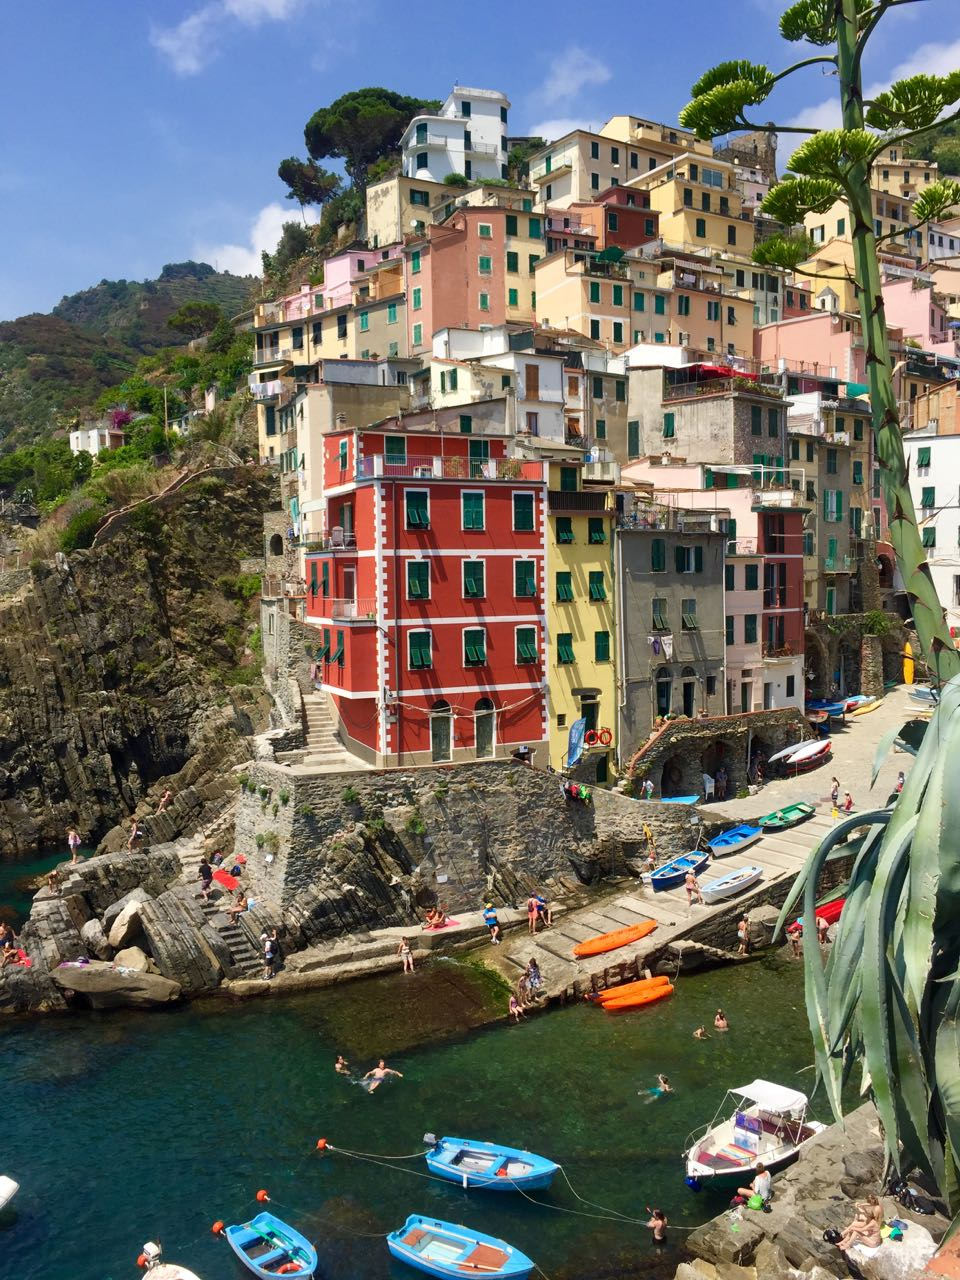 Riomaggiore Bright Buildings on Cliff